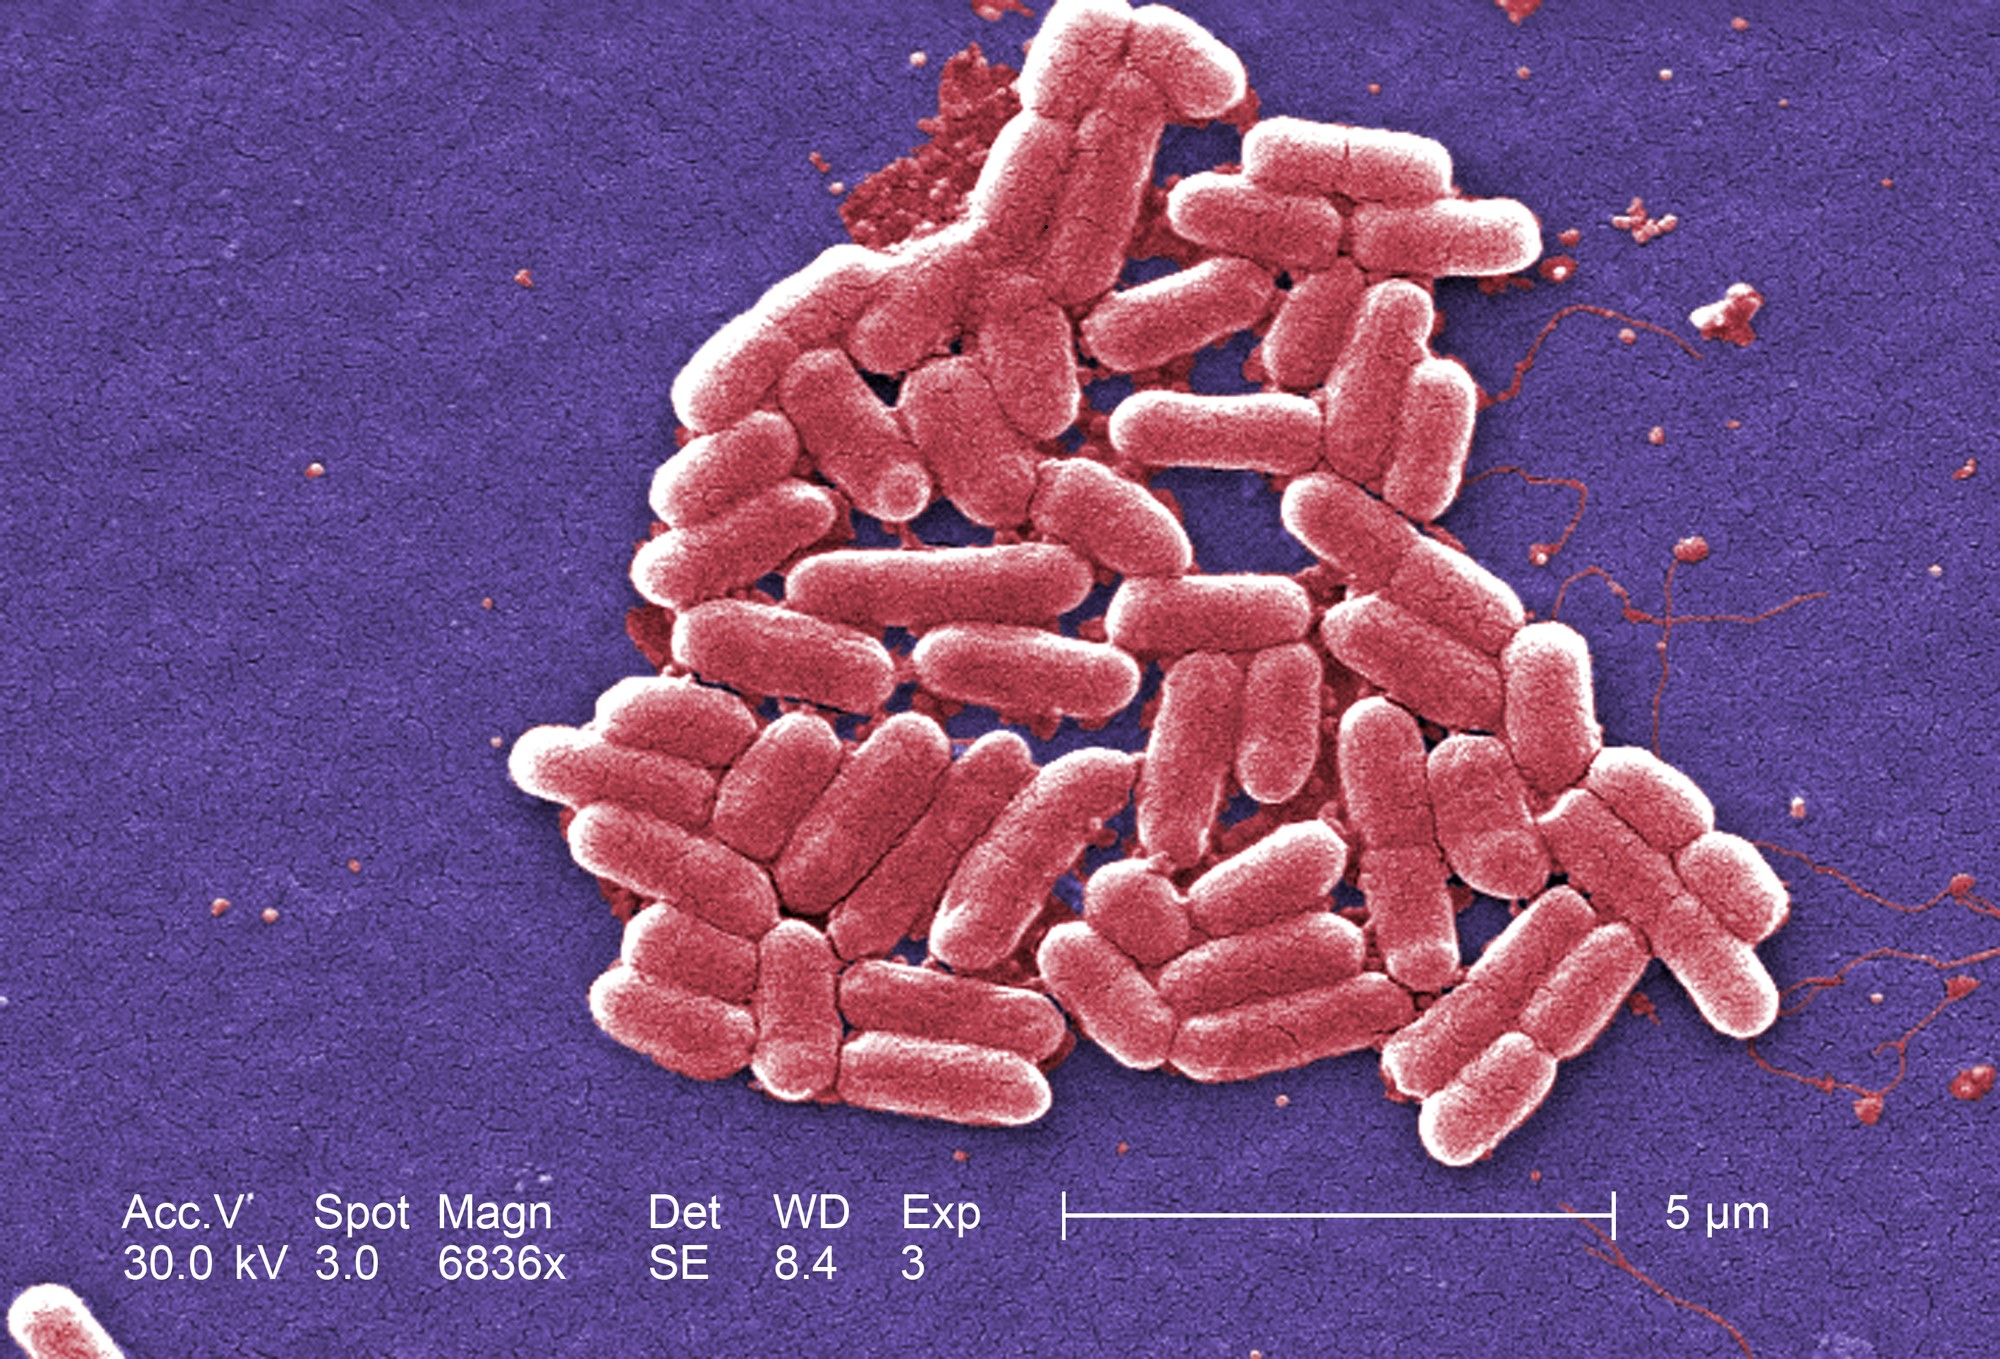 The mcr-1 plasmid-borne colistin resistance gene has been found primarily in Escherichia coli, pictured.